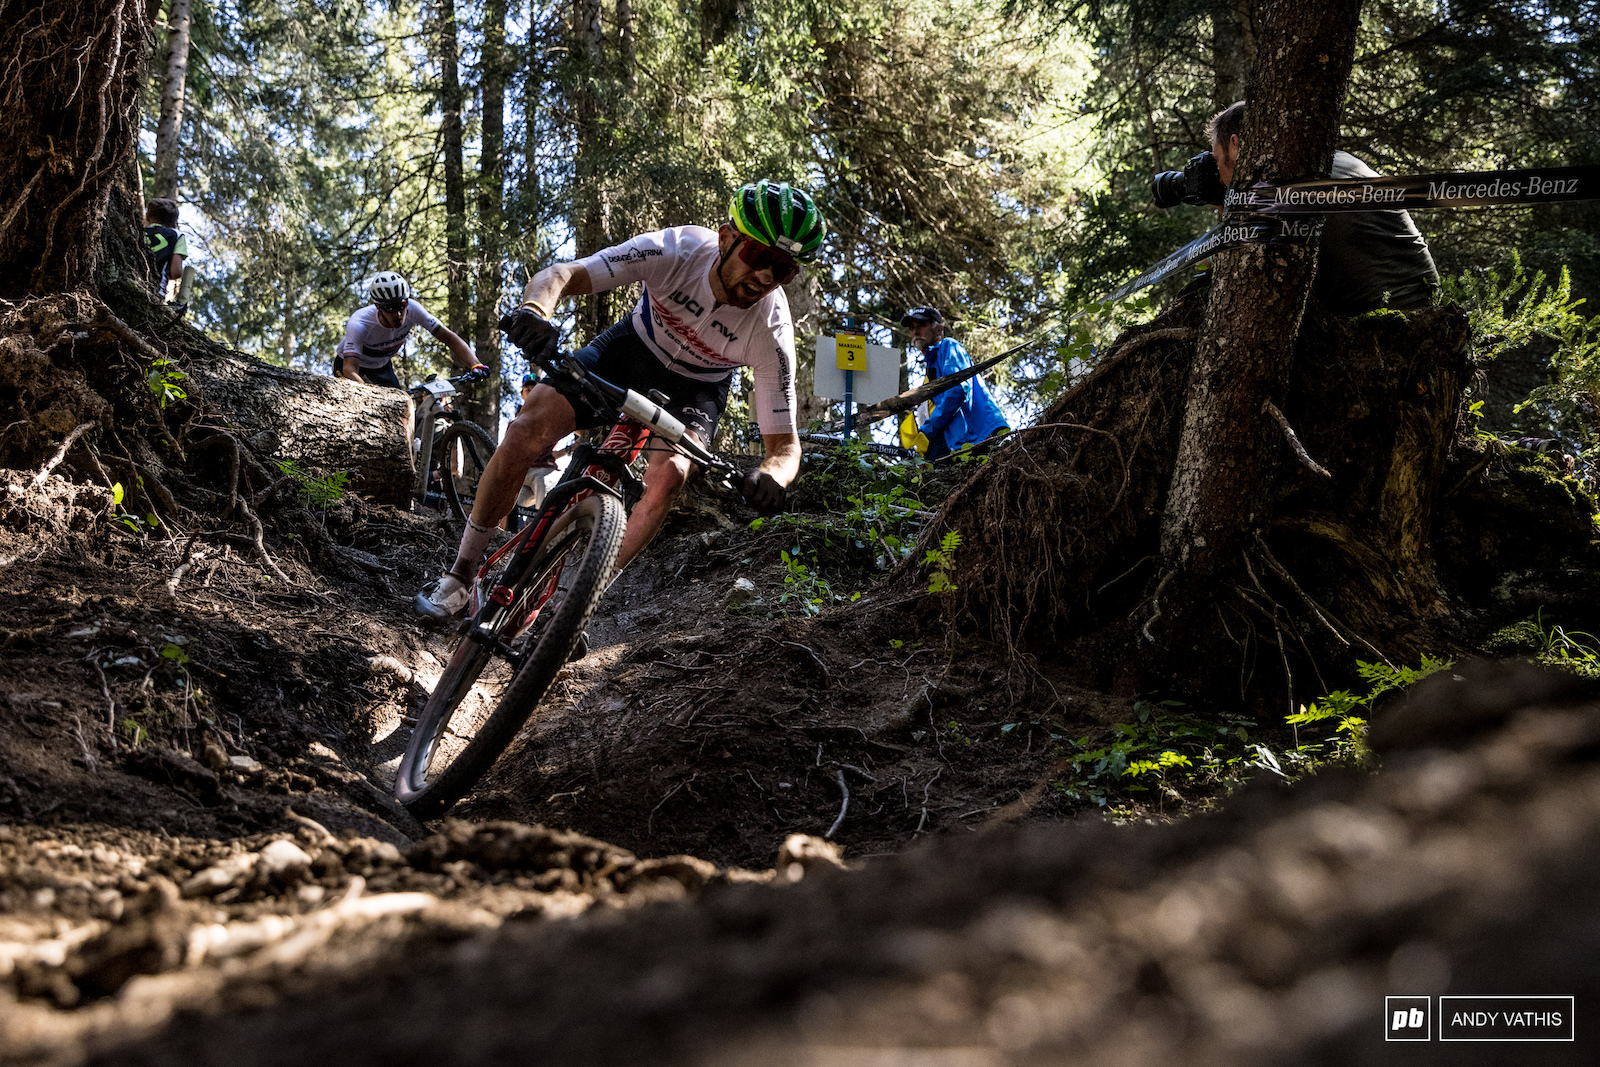 Mathias Flueckiger traded punches with Nino Schurter and would ultimately take third.